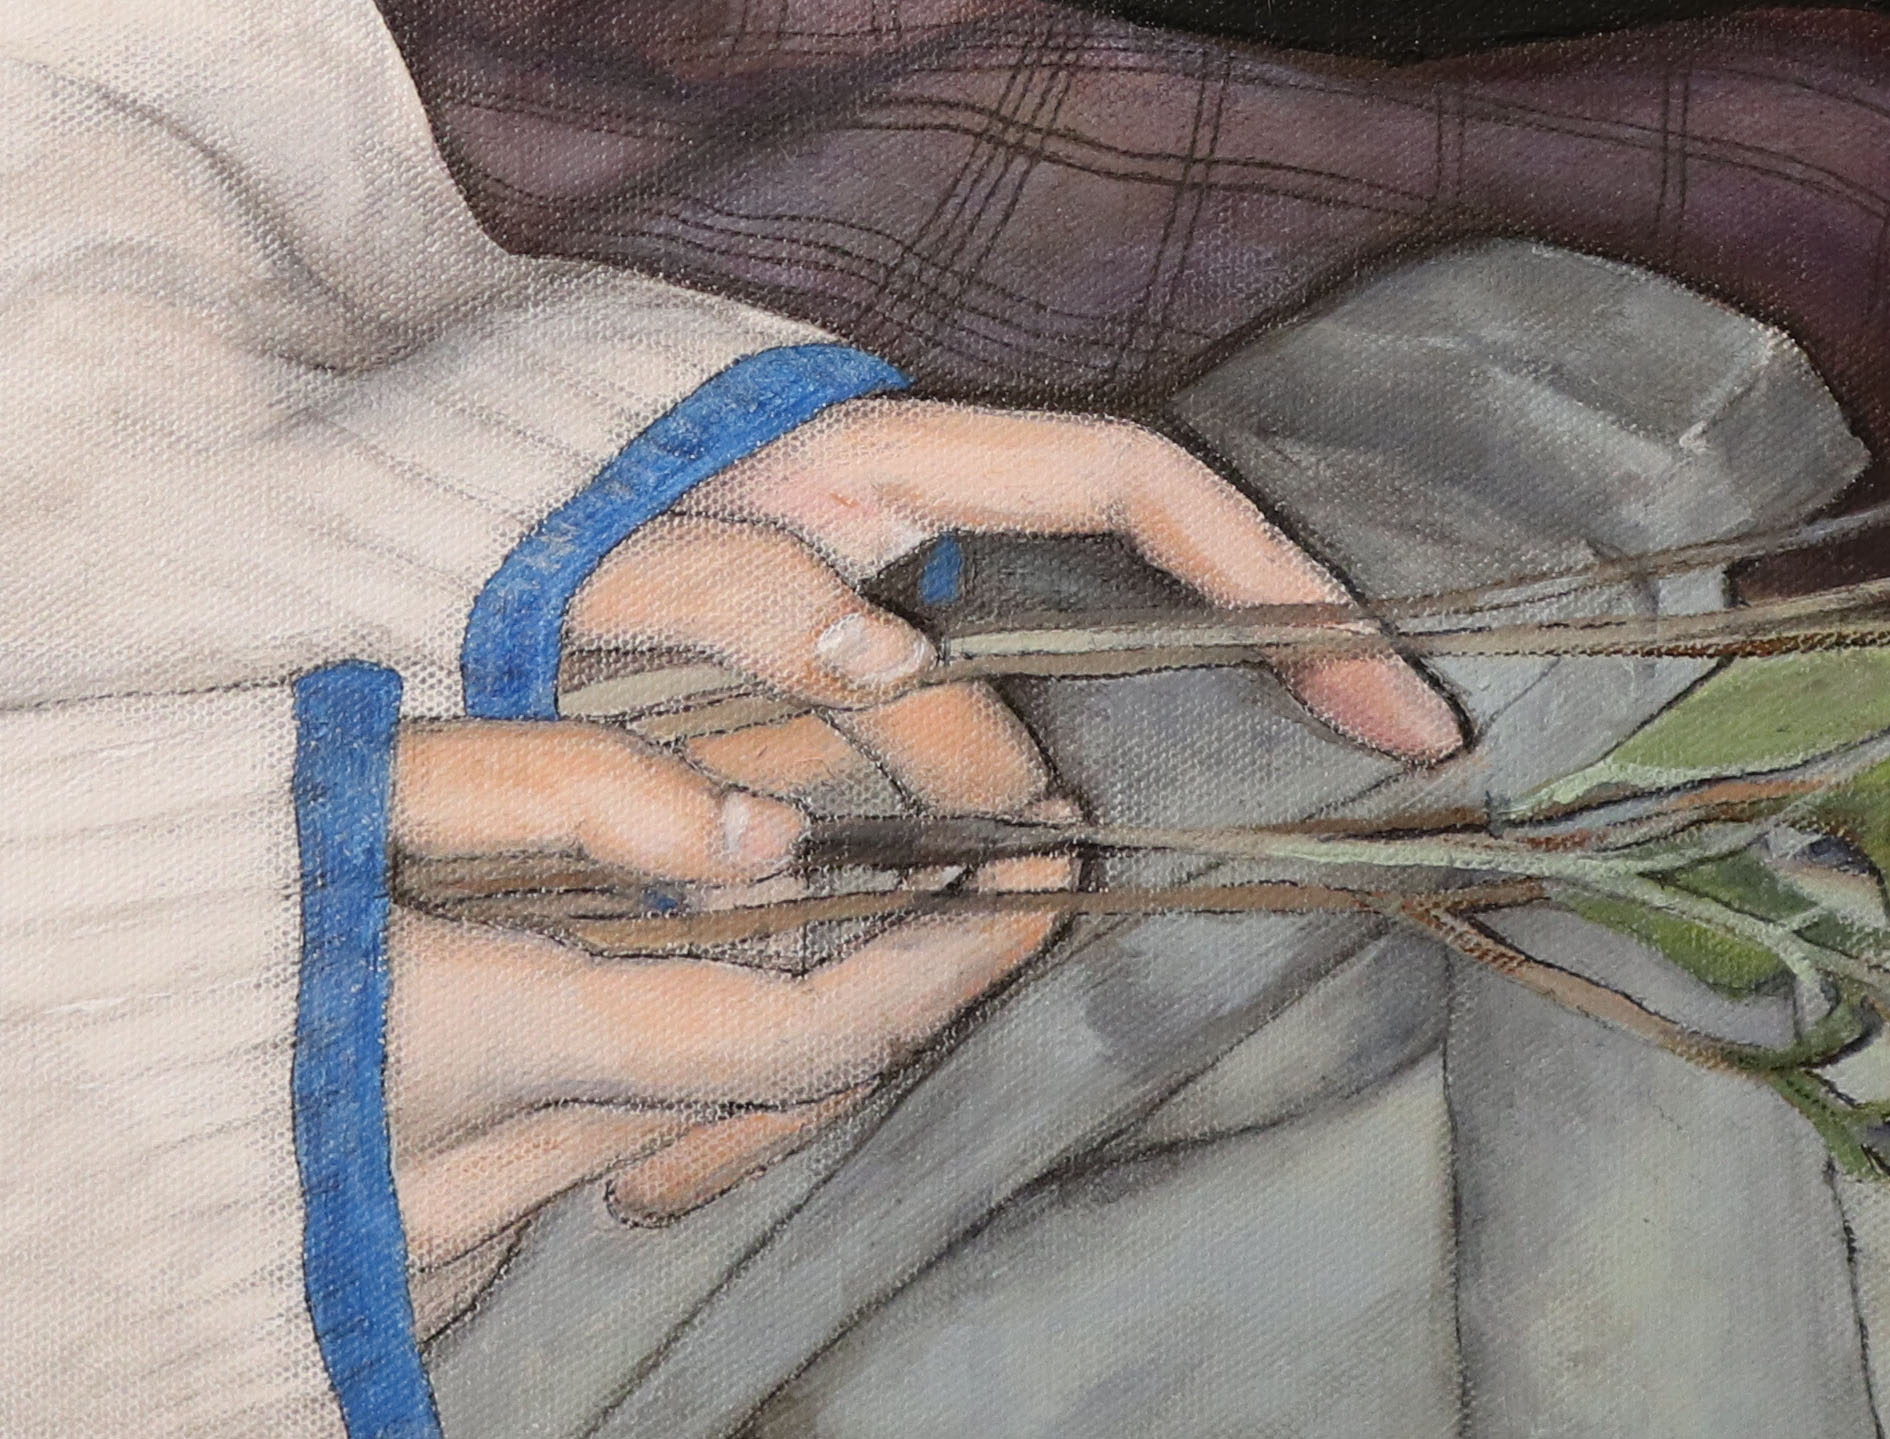 Painting detail of hands holding wilted flowers.